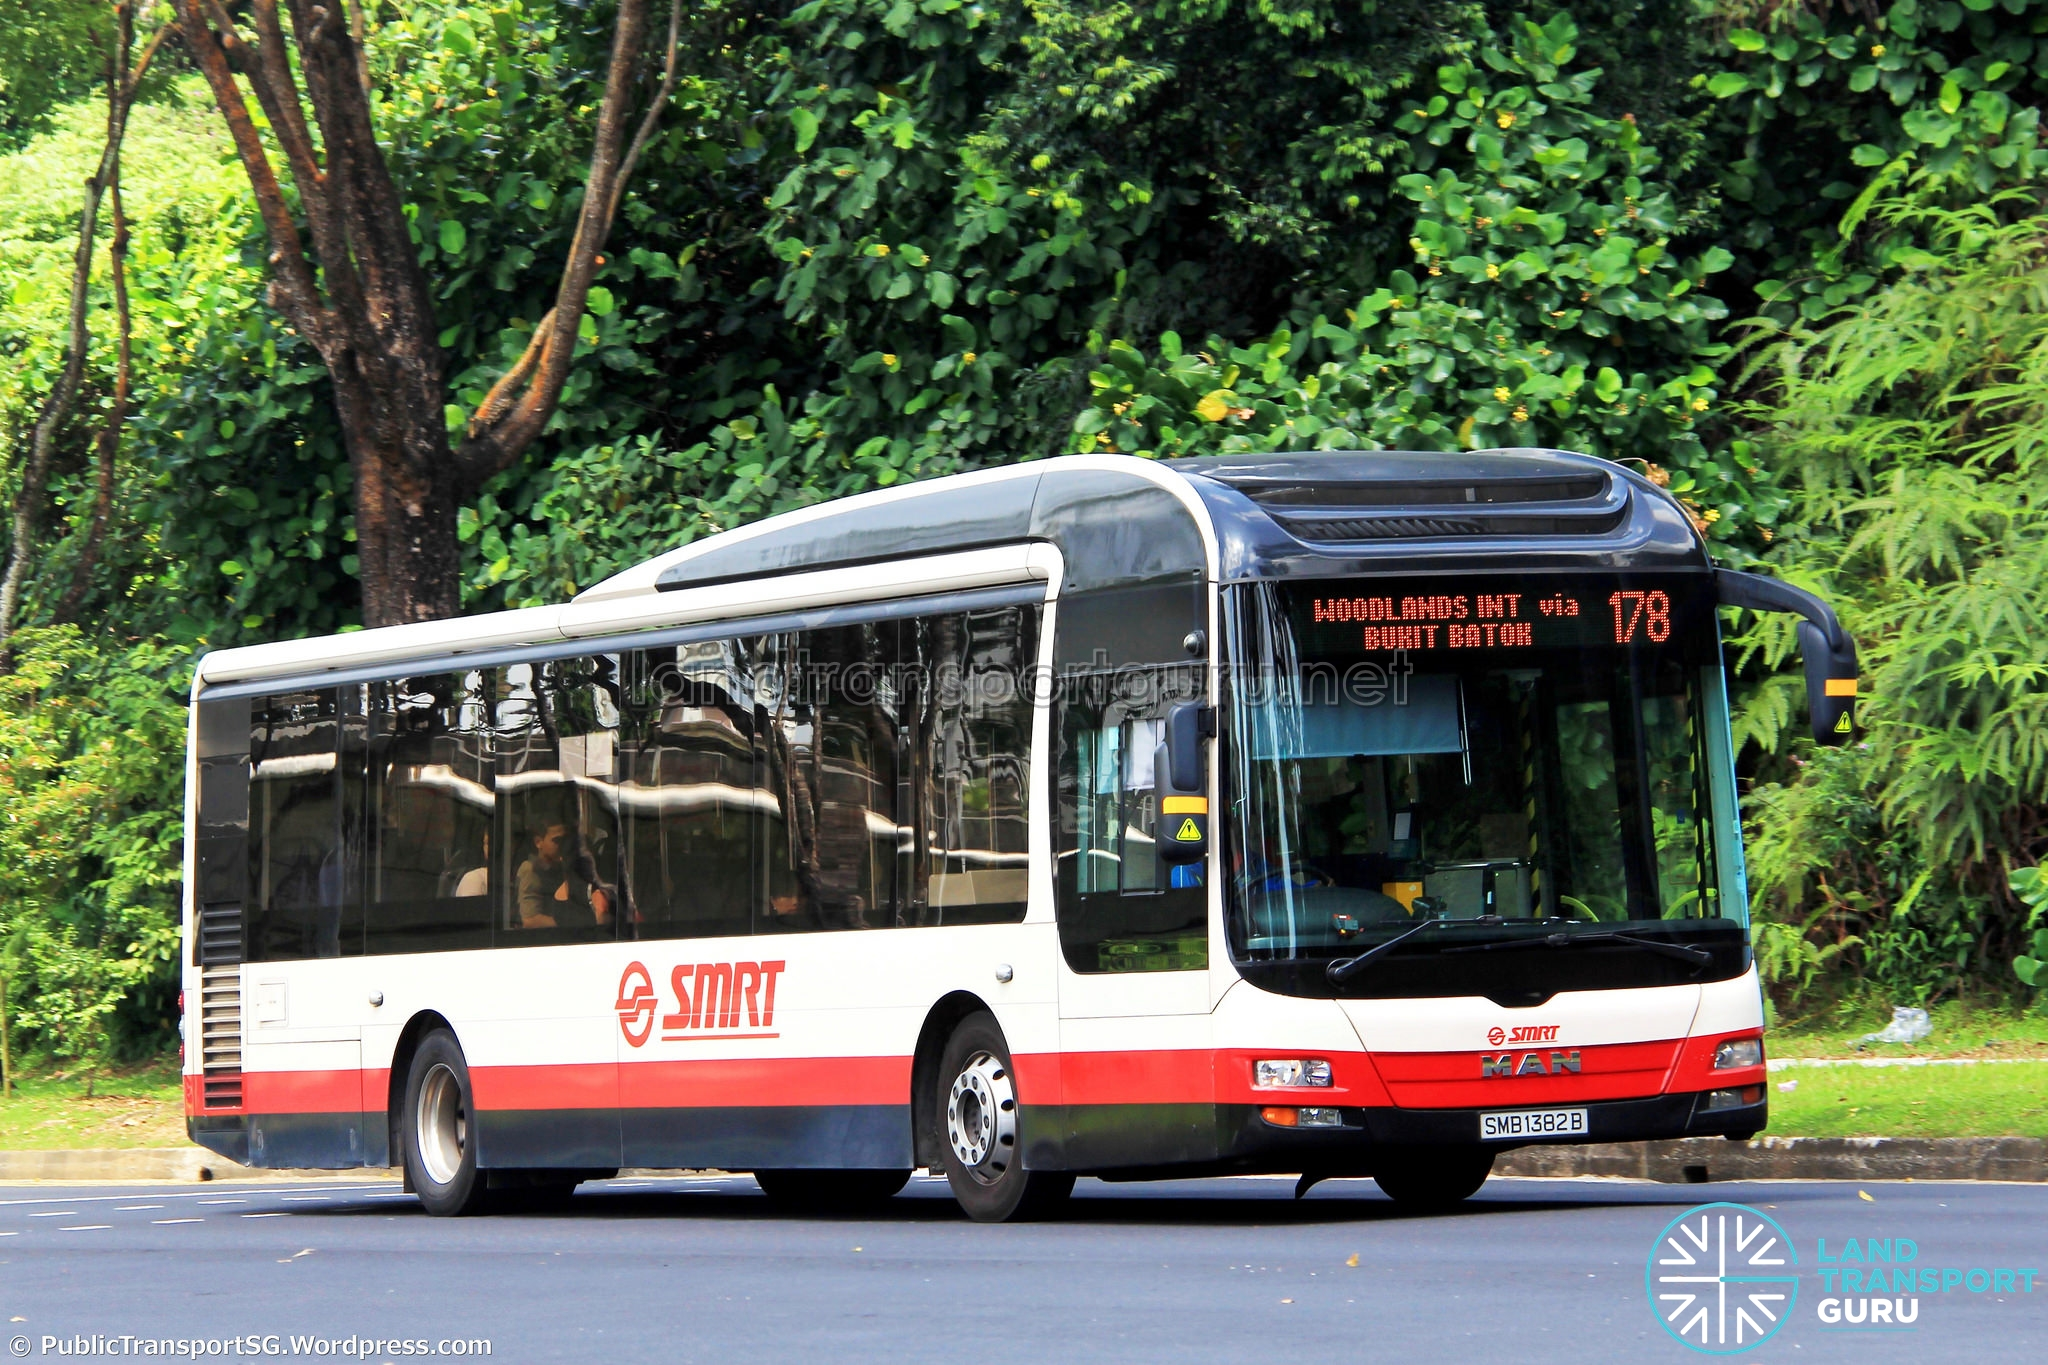 Uni-Directional Amendment of Bus Services 160 & 178 along